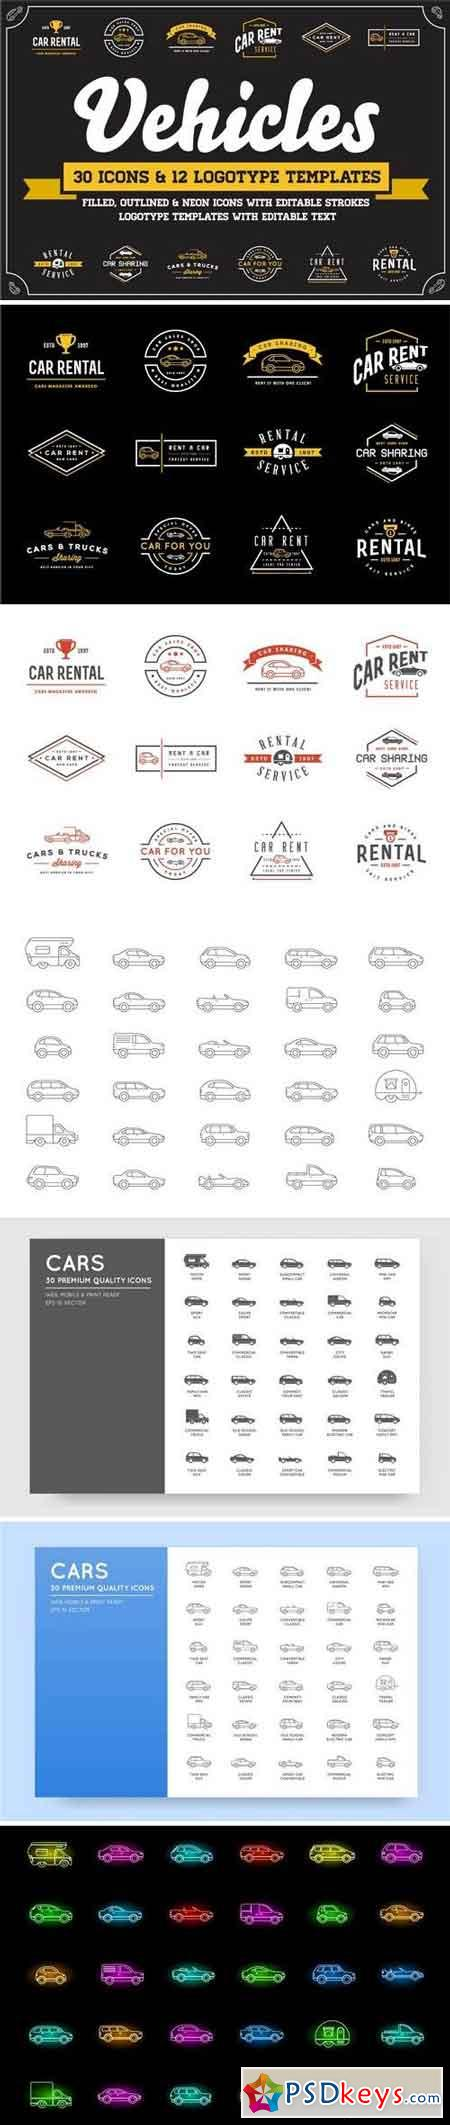 Awesome Vehicles Icons and Logo Set 3524401